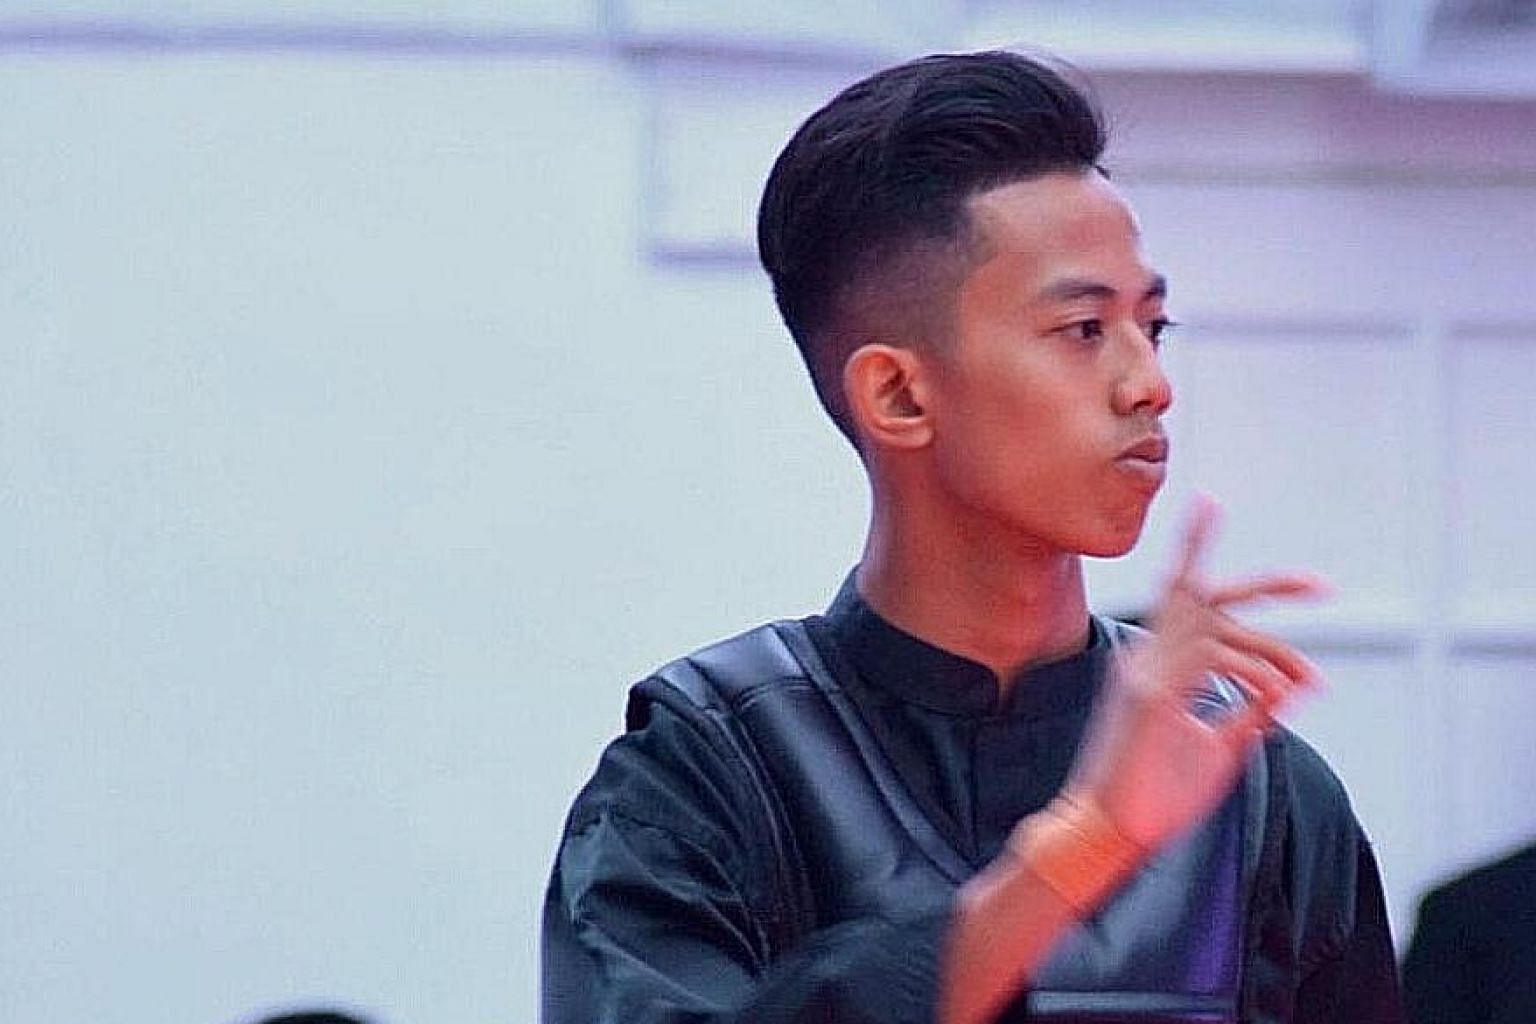 Hazim Yusli at the South-east Asian Sultan's Pencak Silat Championship this week. The 17-year-old had to settle for the silver after withdrawing from the Class B final. Singapore ended second on the medal tally with two golds, six silvers and two bro